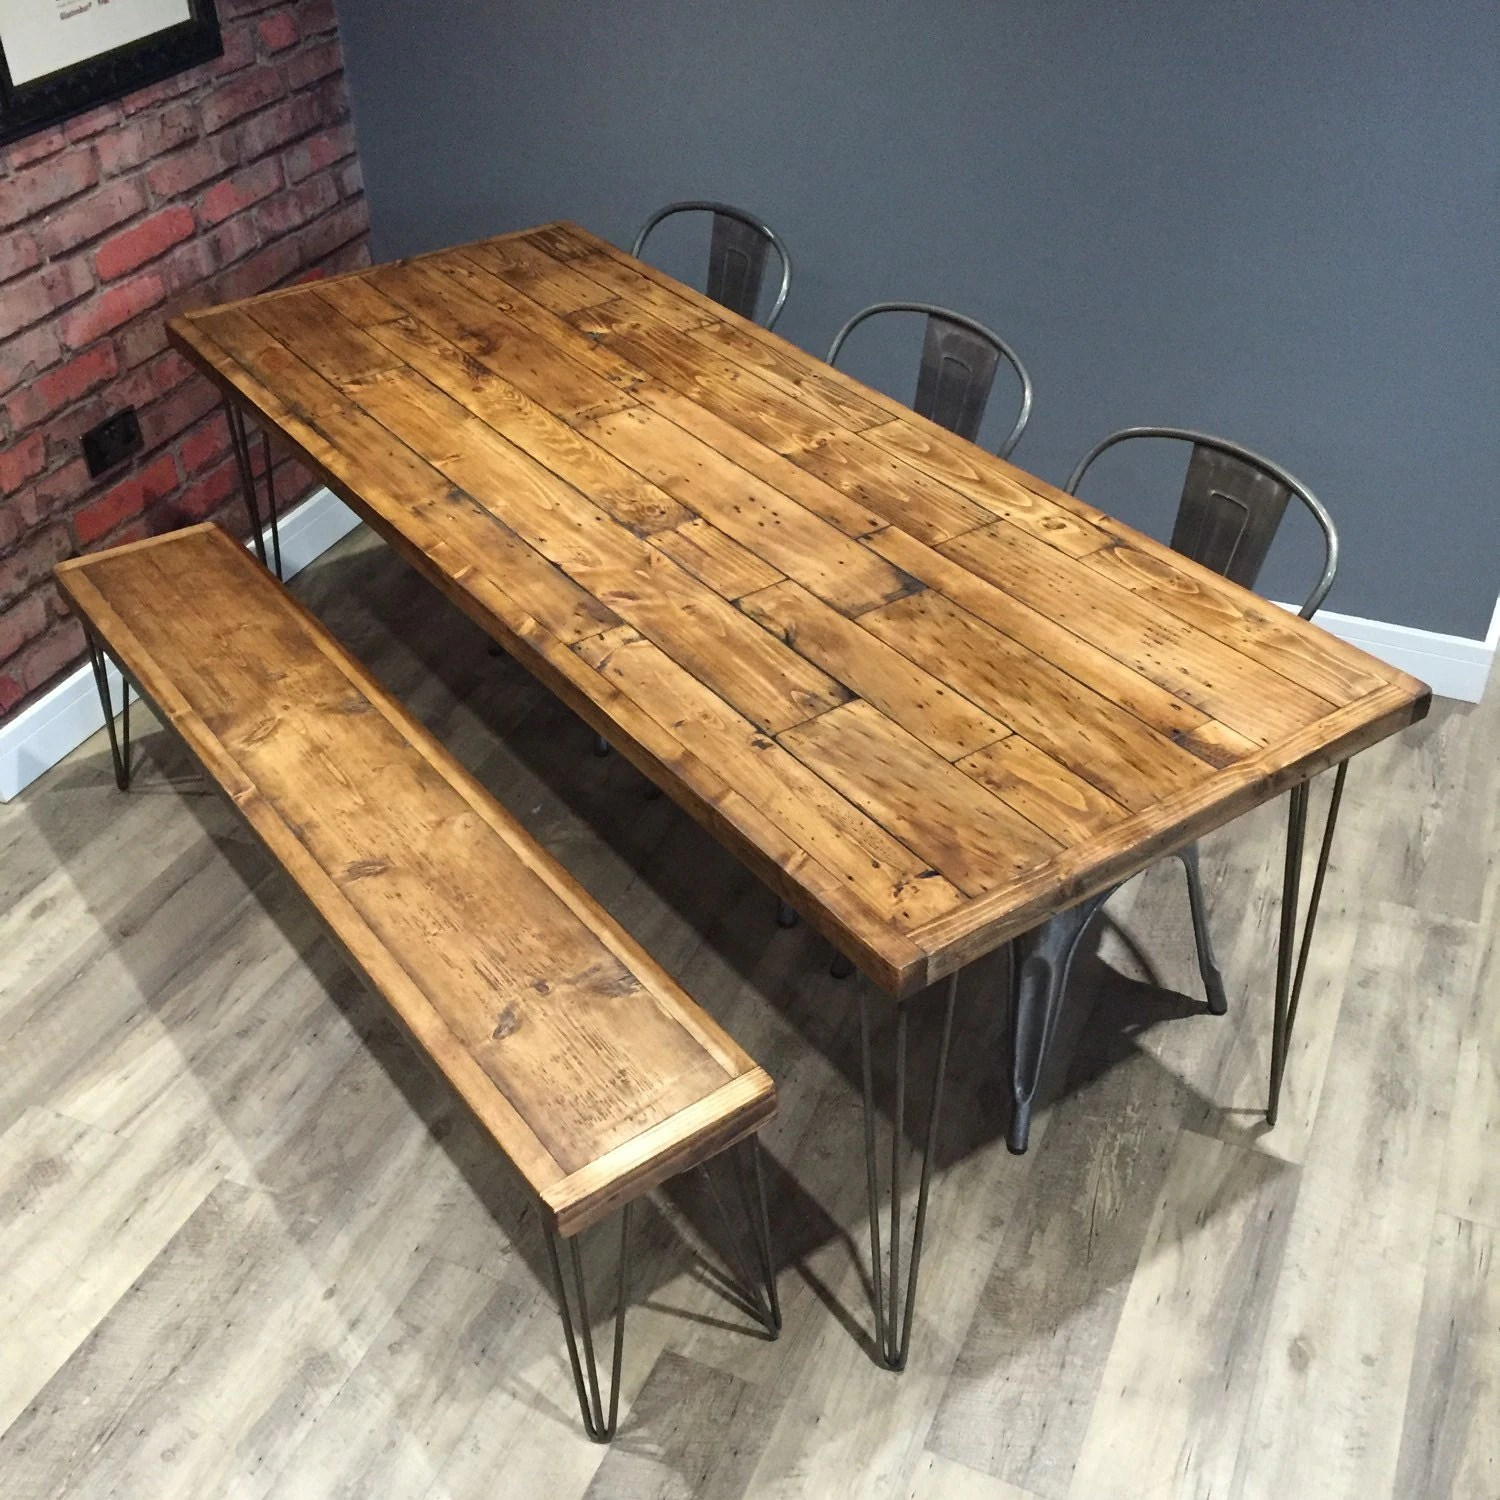 pallet sofa table for sale buy sofas online ebay reclaimed industrial wood dining with metal